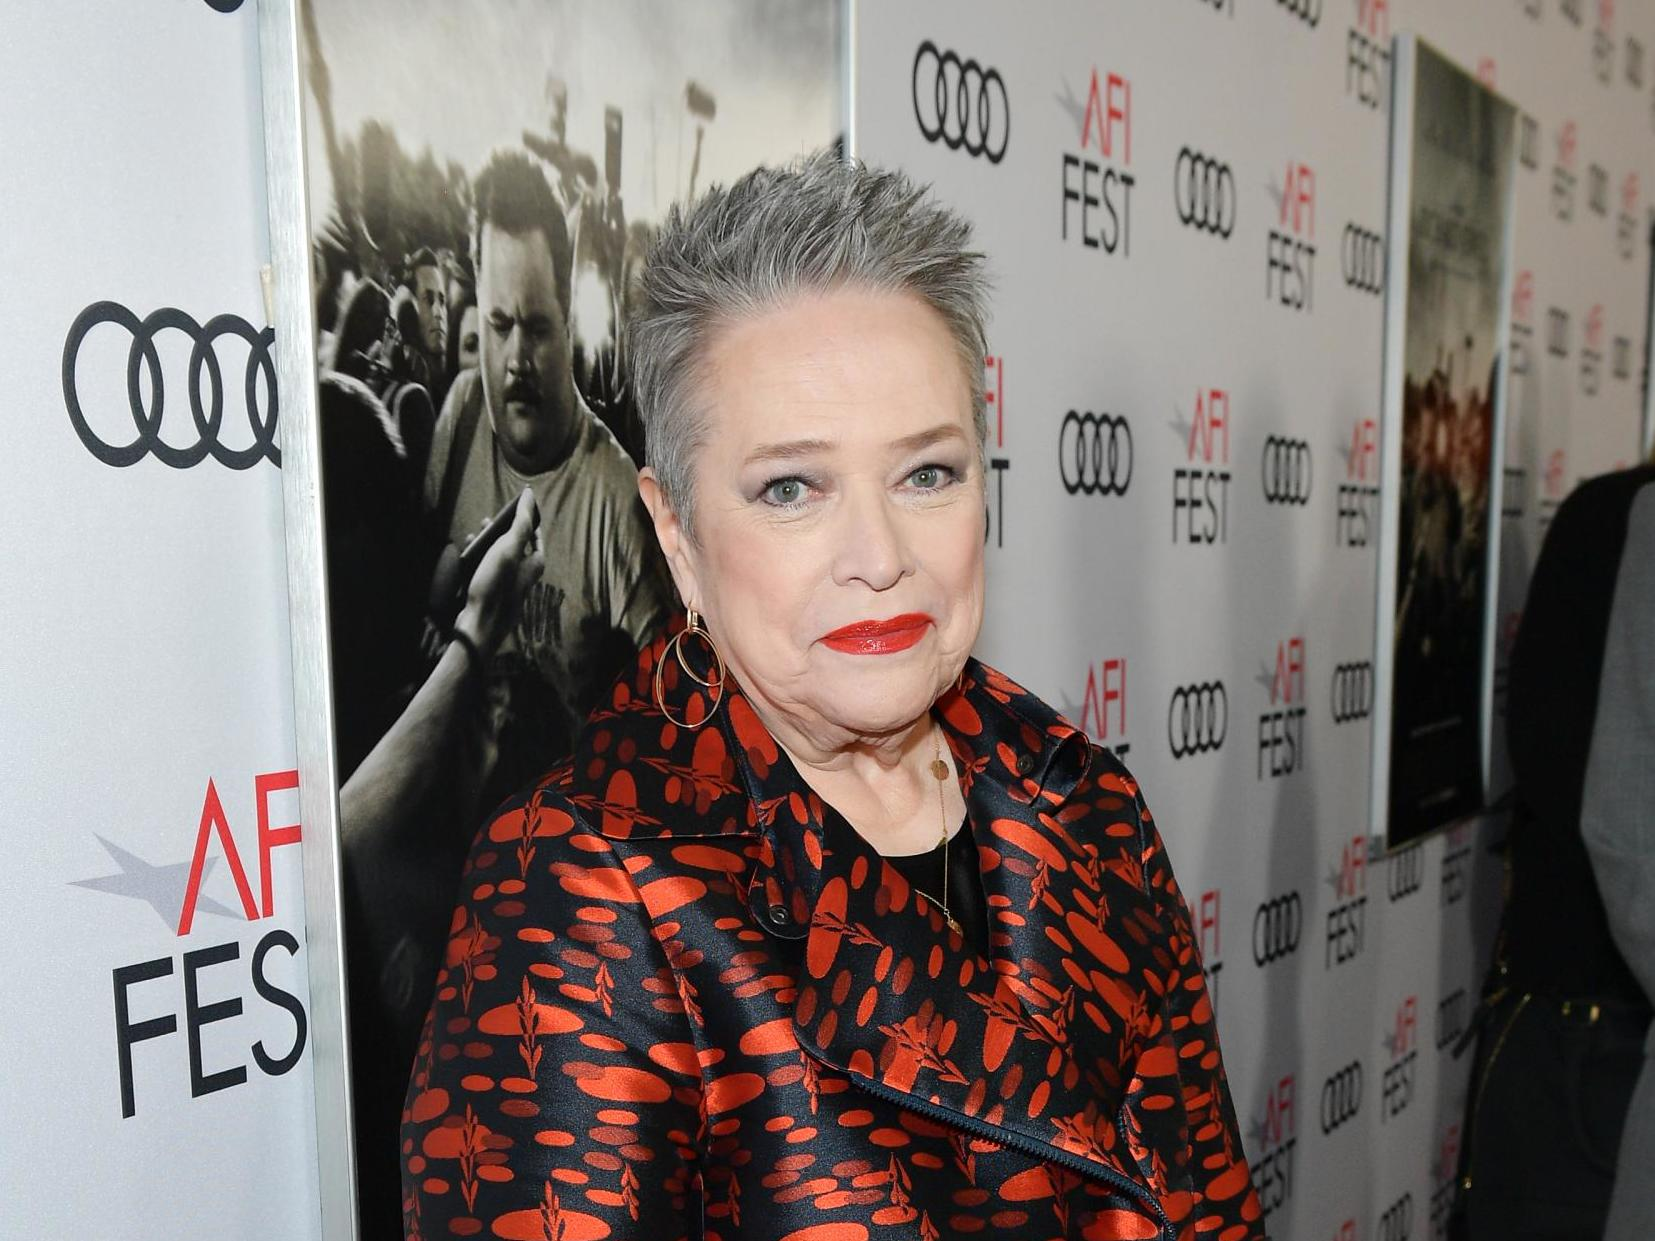 Kathy Bates says 'in her day' women knew exactly 'why they were going' to men's hotel rooms